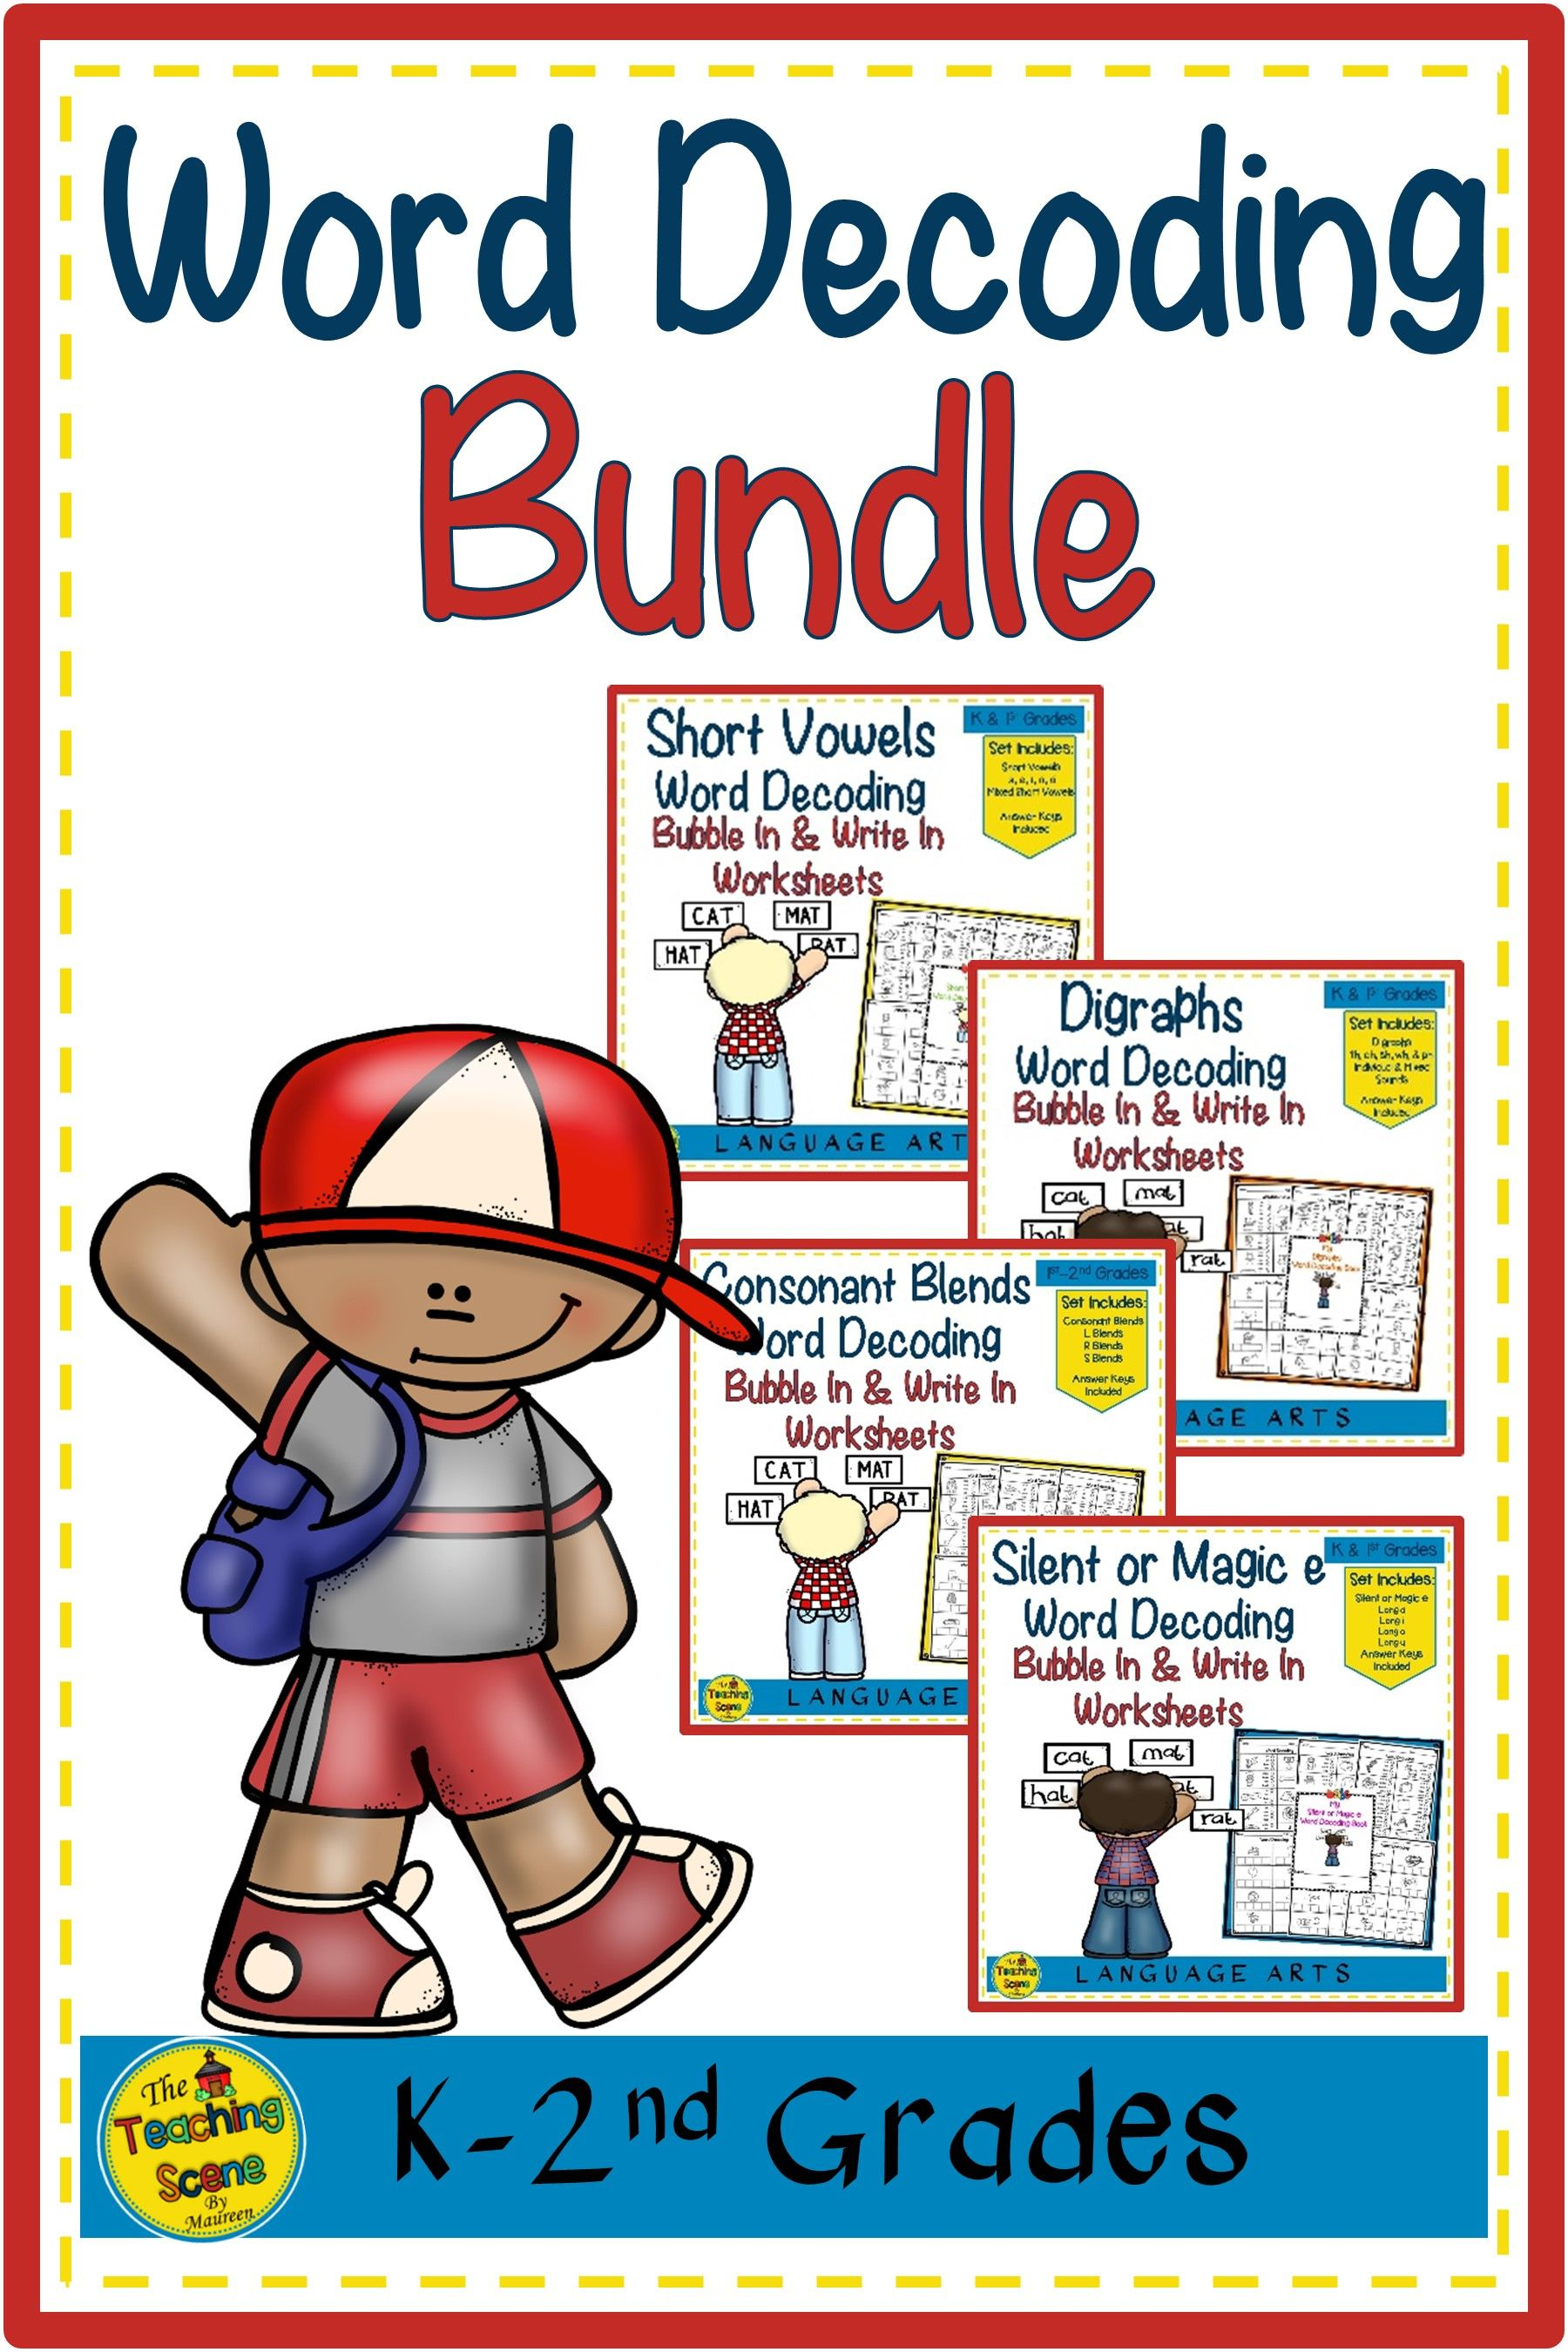 Word Decoding Bundle 1 Short Vowels Digraphs Blends